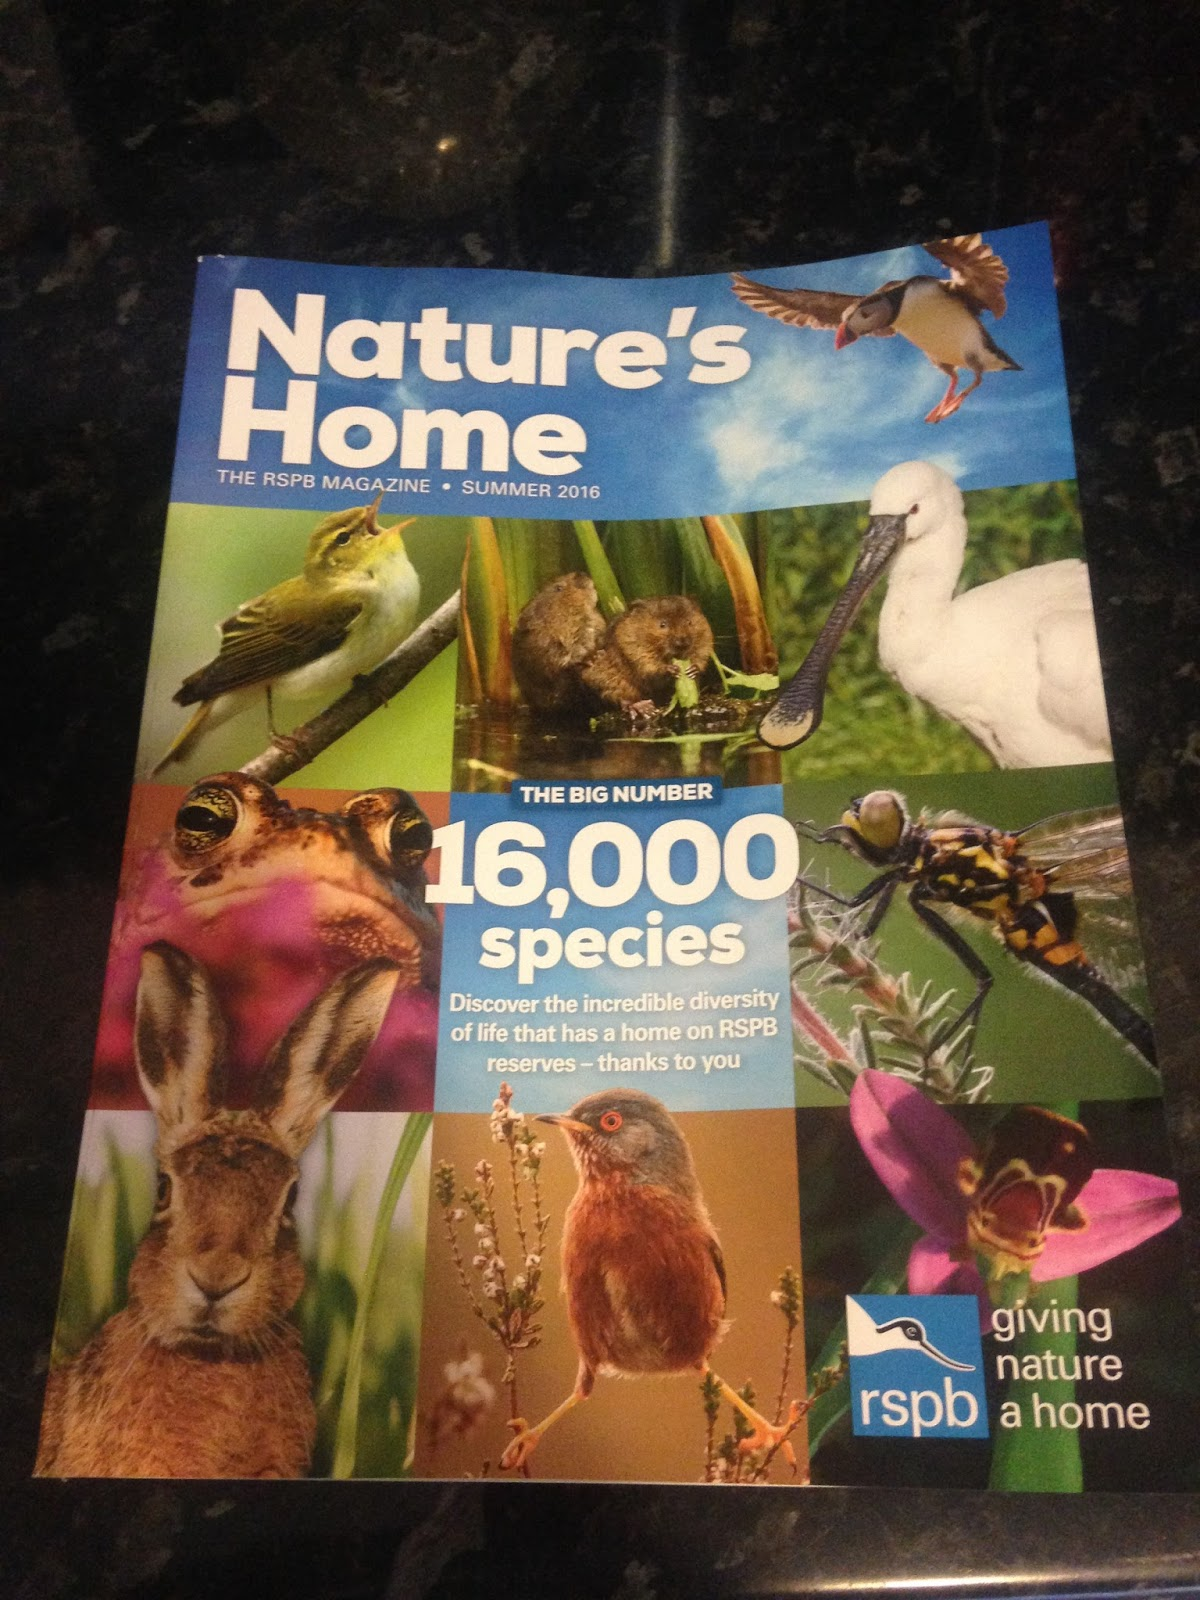 It also has a a5 map of the uk with all the rspb locations marked and a car sticker